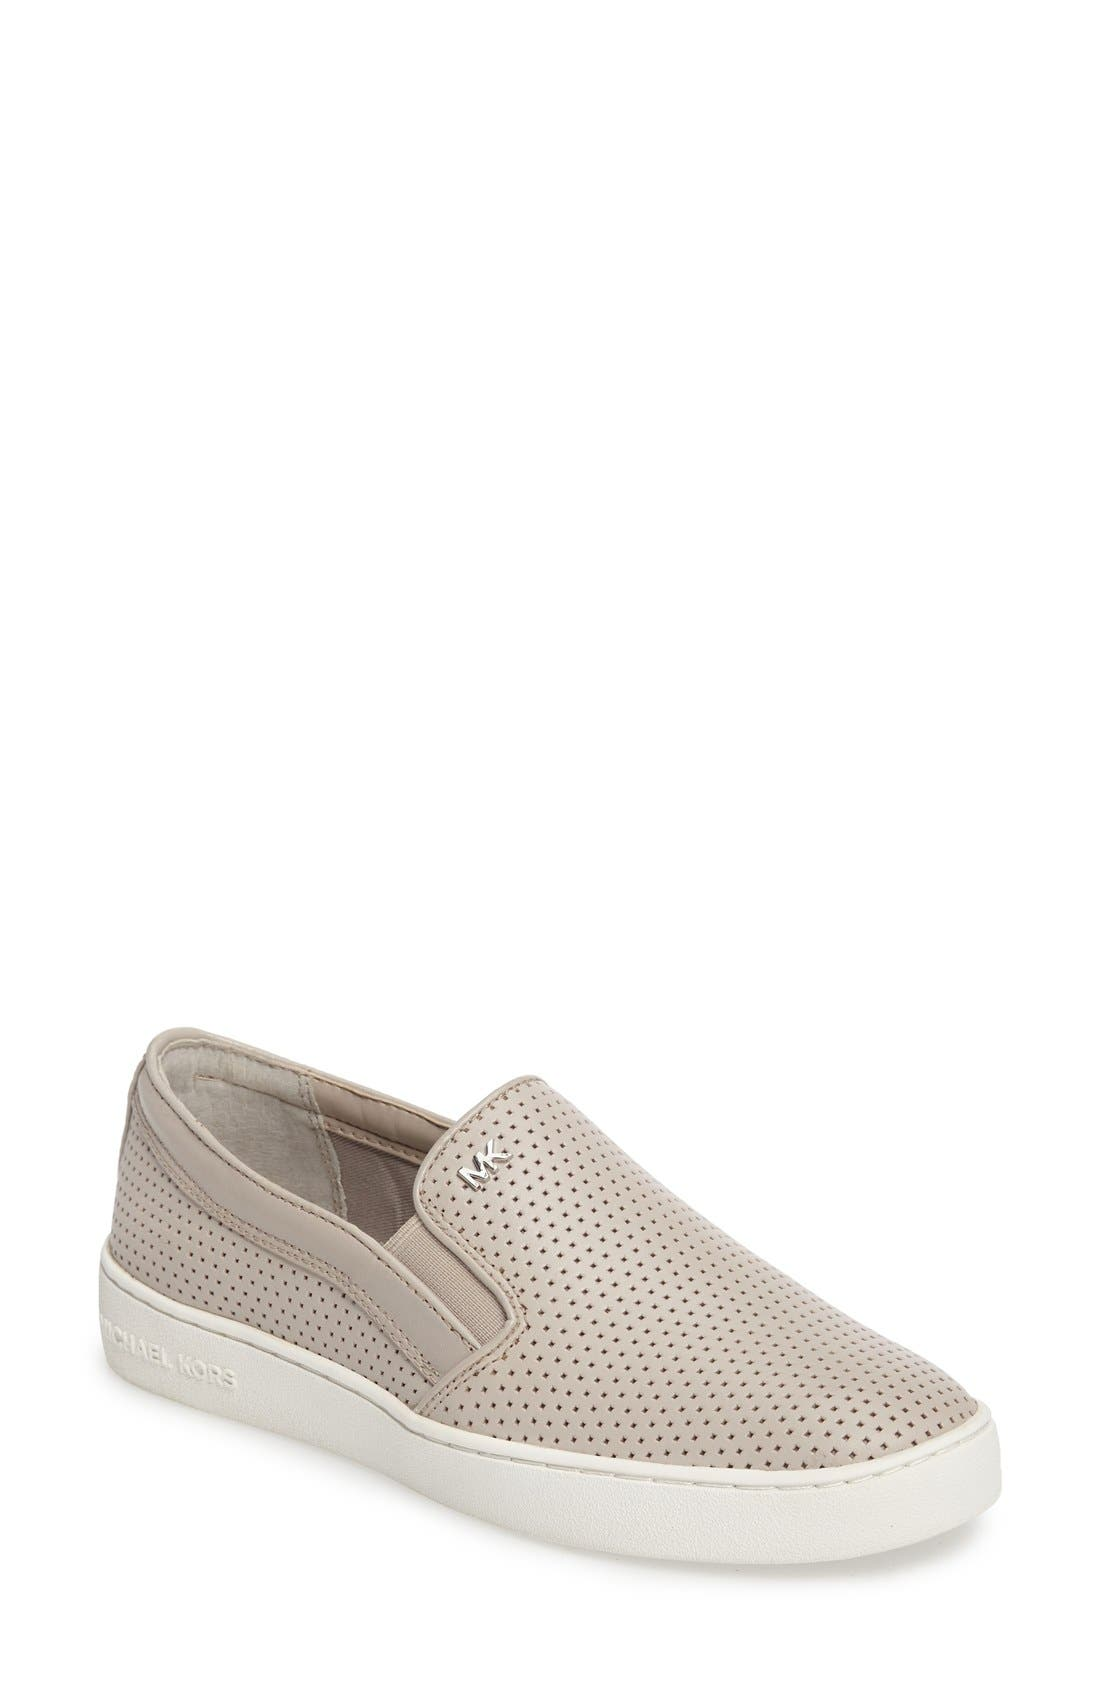 Keaton Slip-On Sneaker,                             Main thumbnail 29, color,